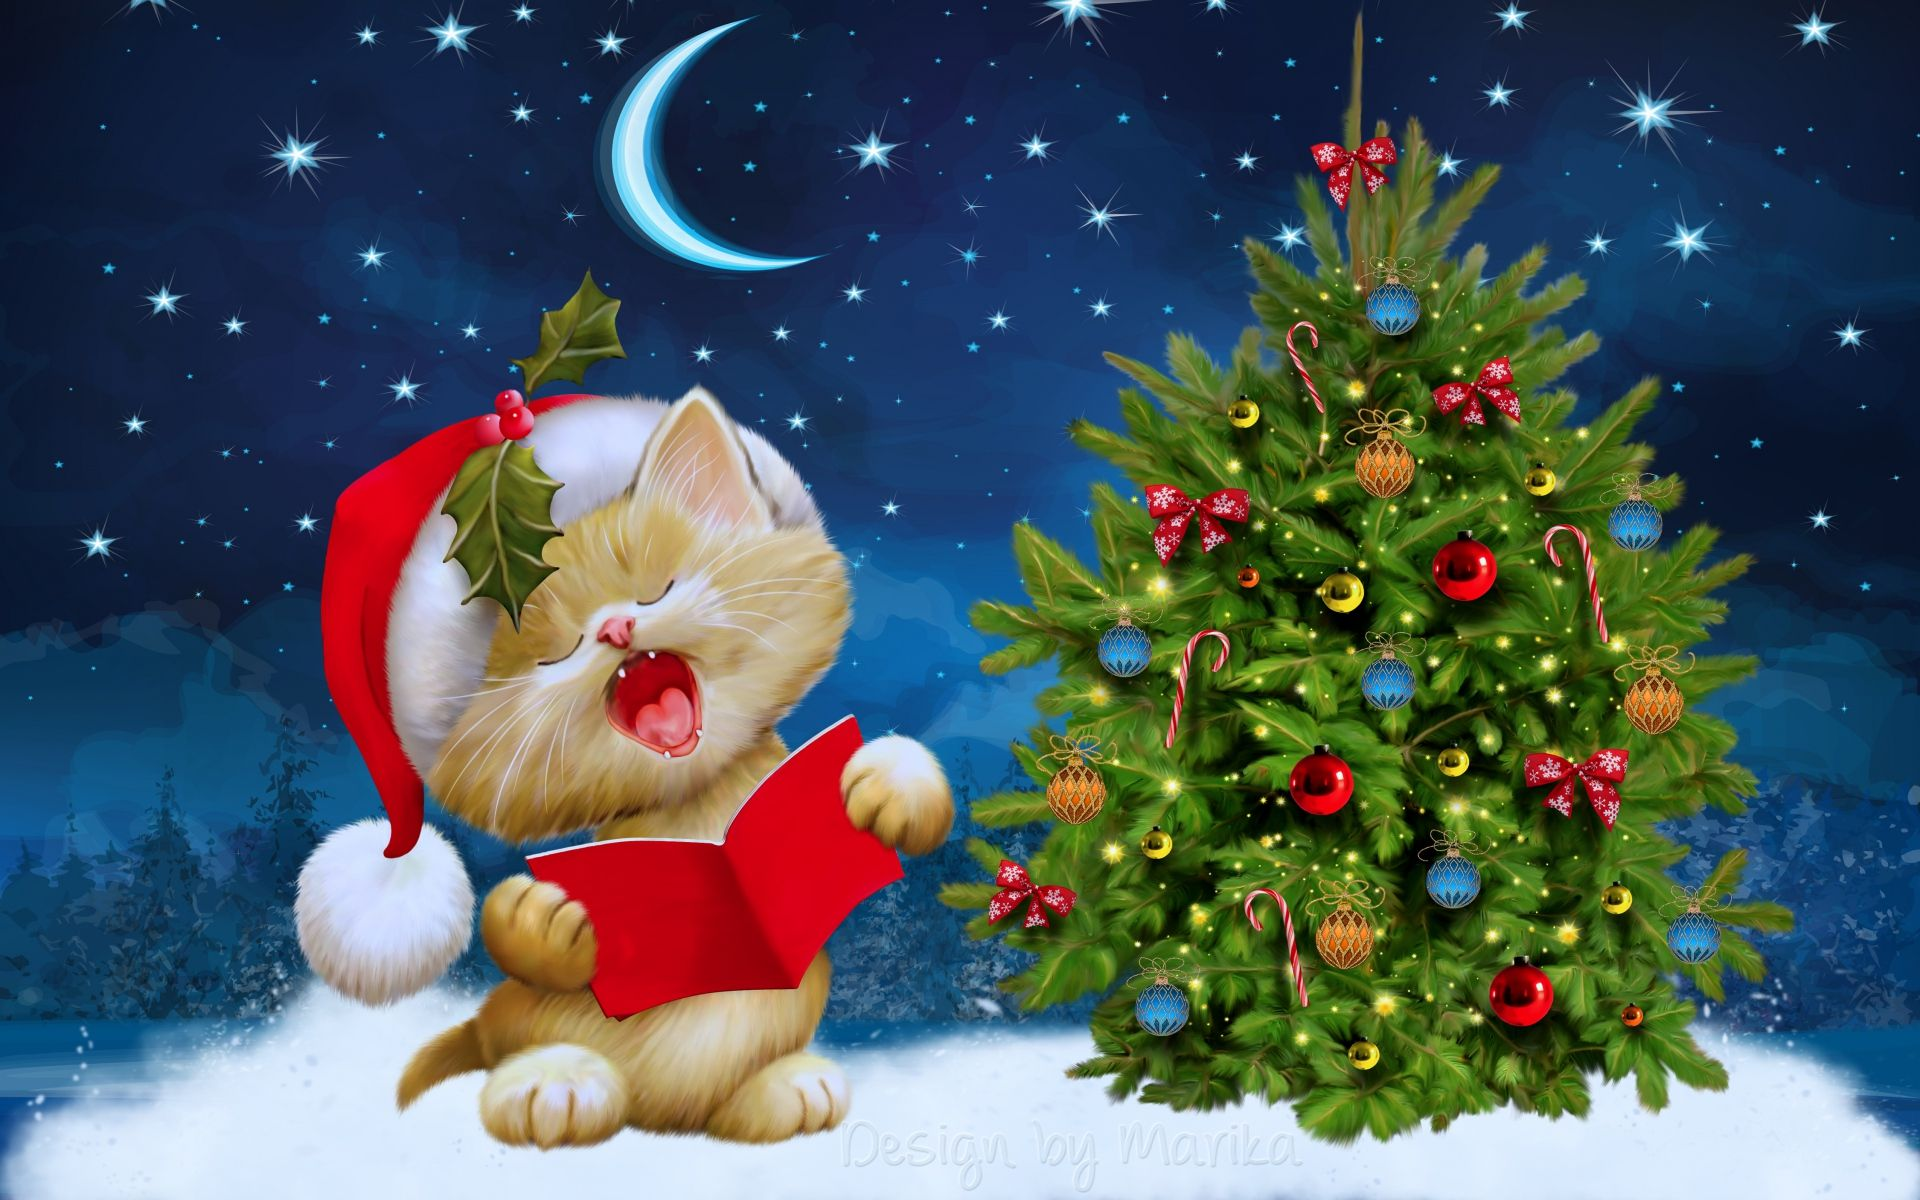 wallpapers christmas imagenes navidenos - photo #20